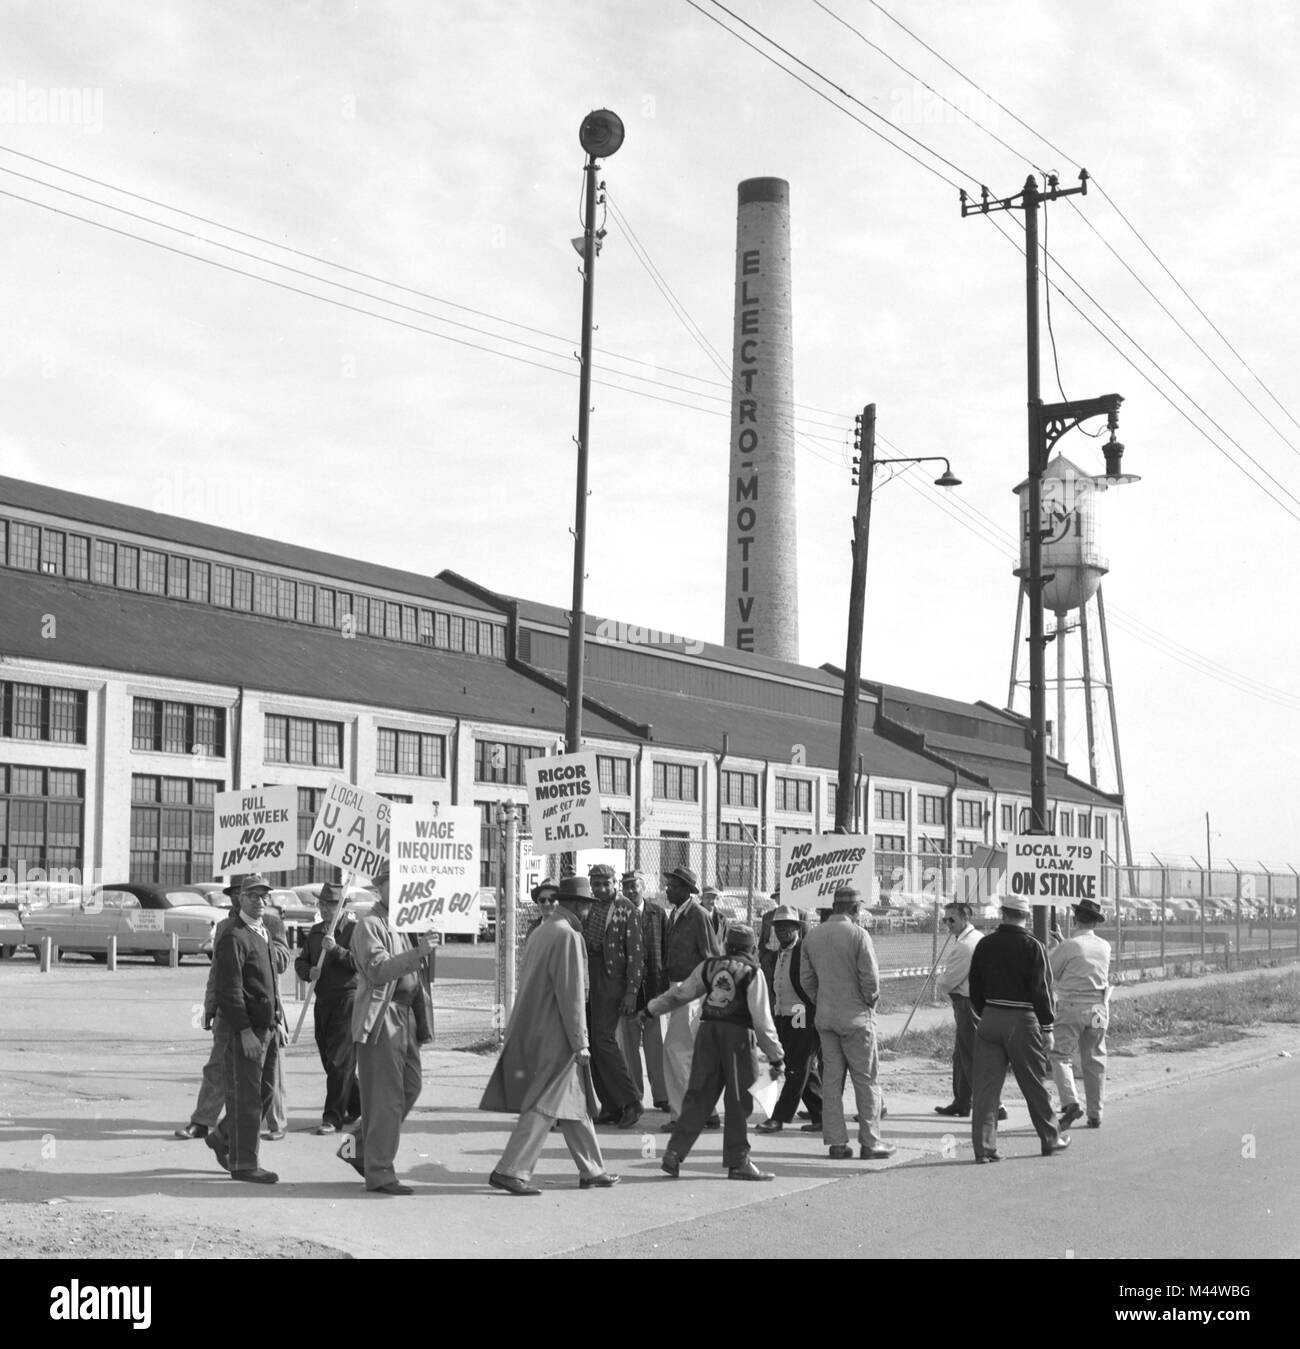 Members of the United Auto Workers picket at General Motors plant in 1958. - Stock Image